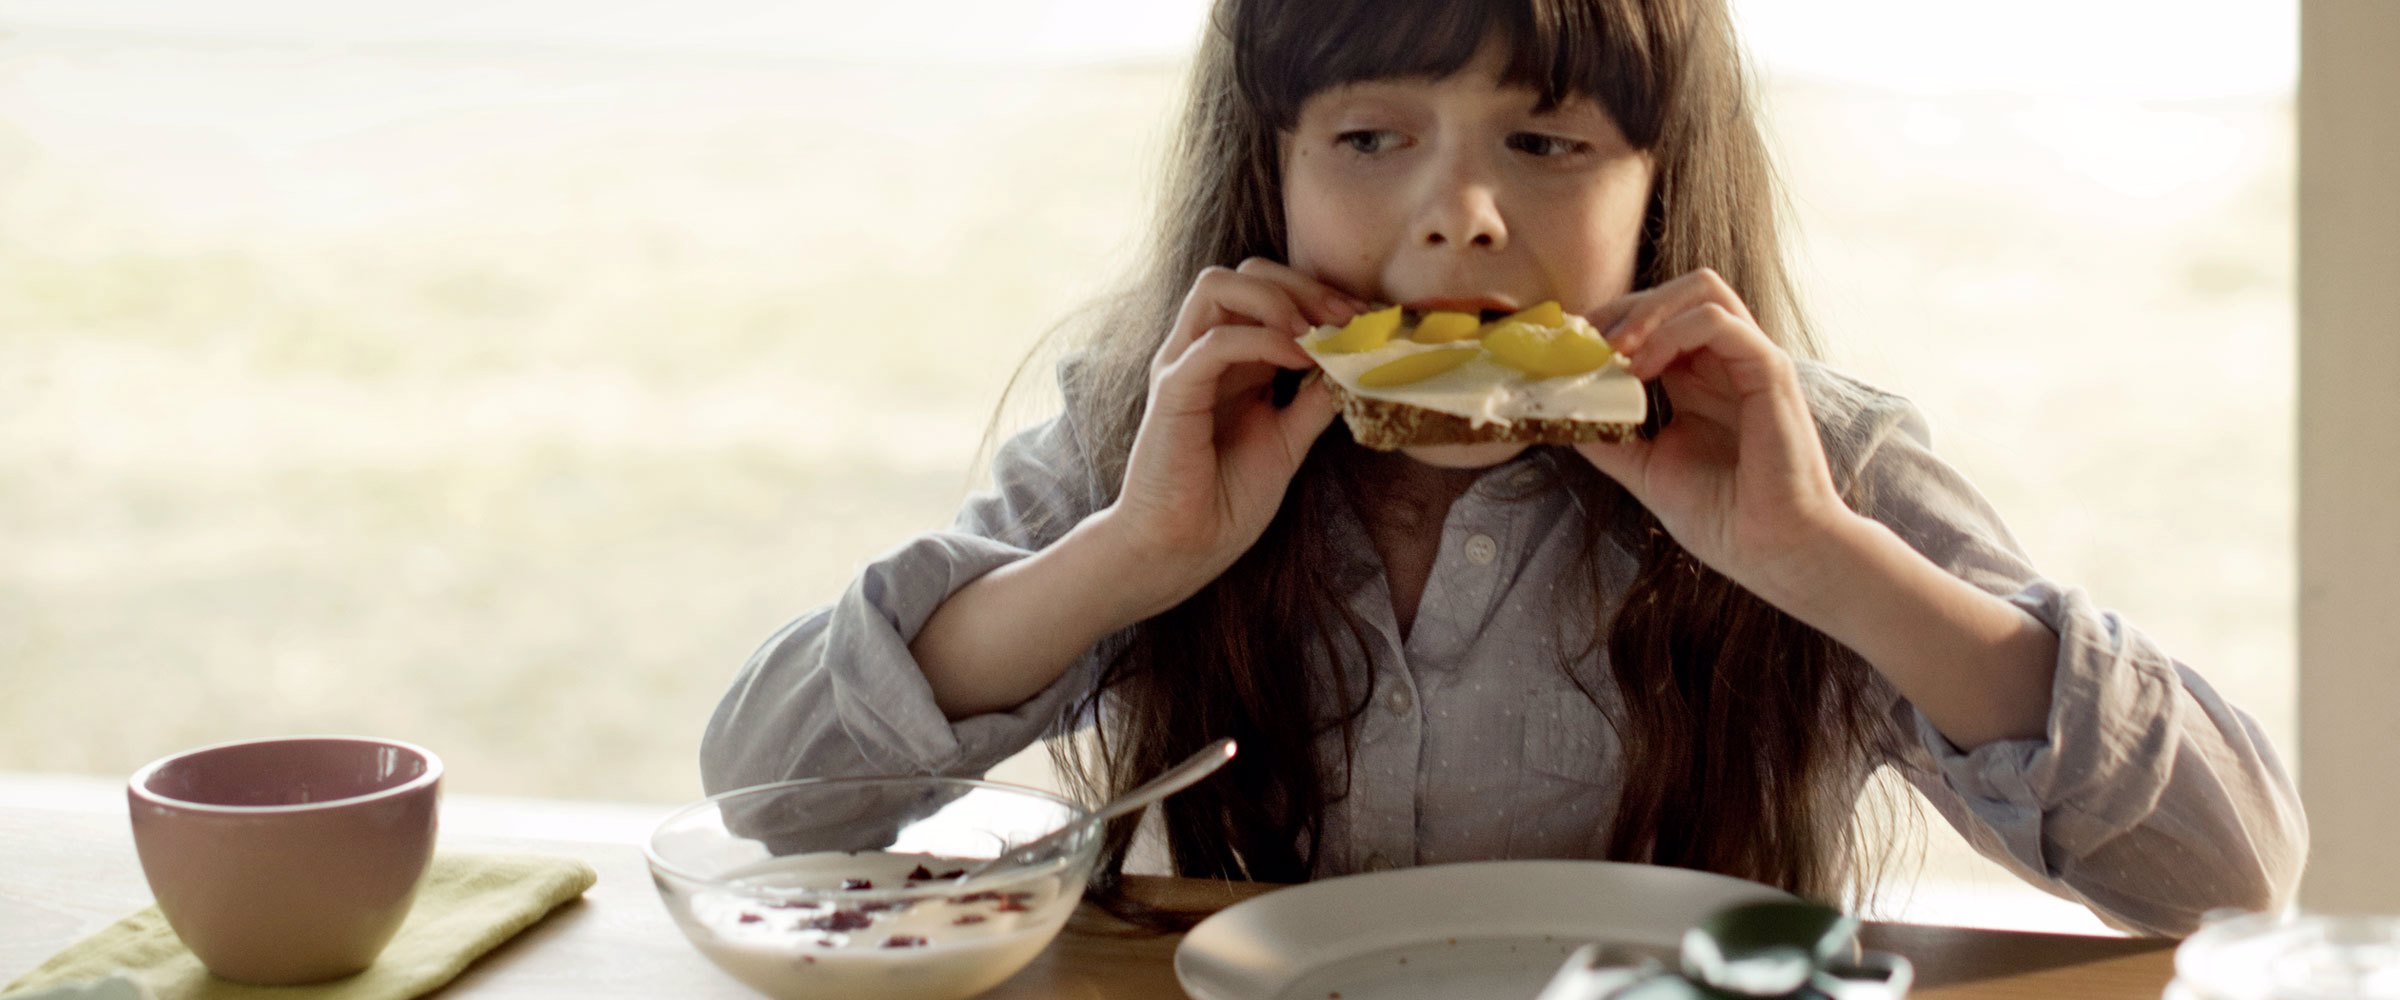 A girl eating toast